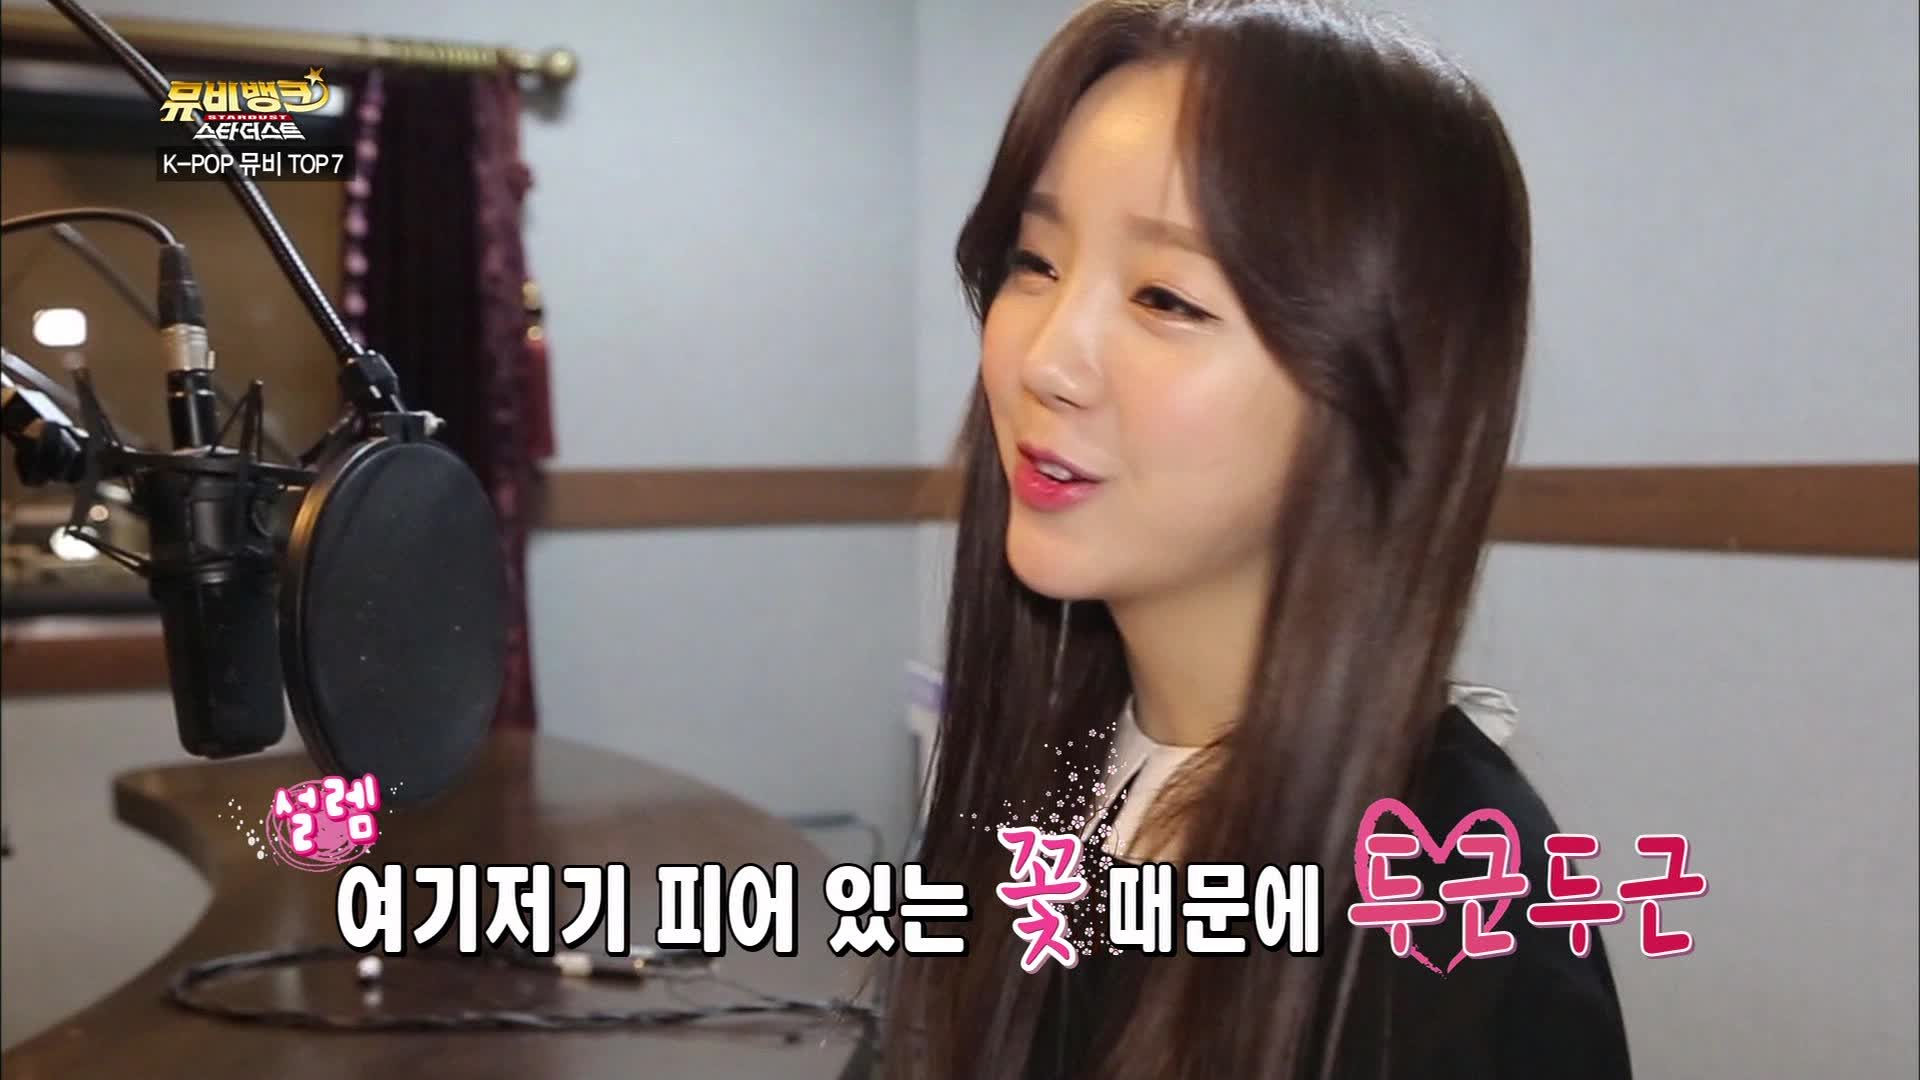 MV Bank Stardust Season 1 Episode 6: Red Velvet, EXO, Baek Ji Young & Song Yu Bin, N-Sonic